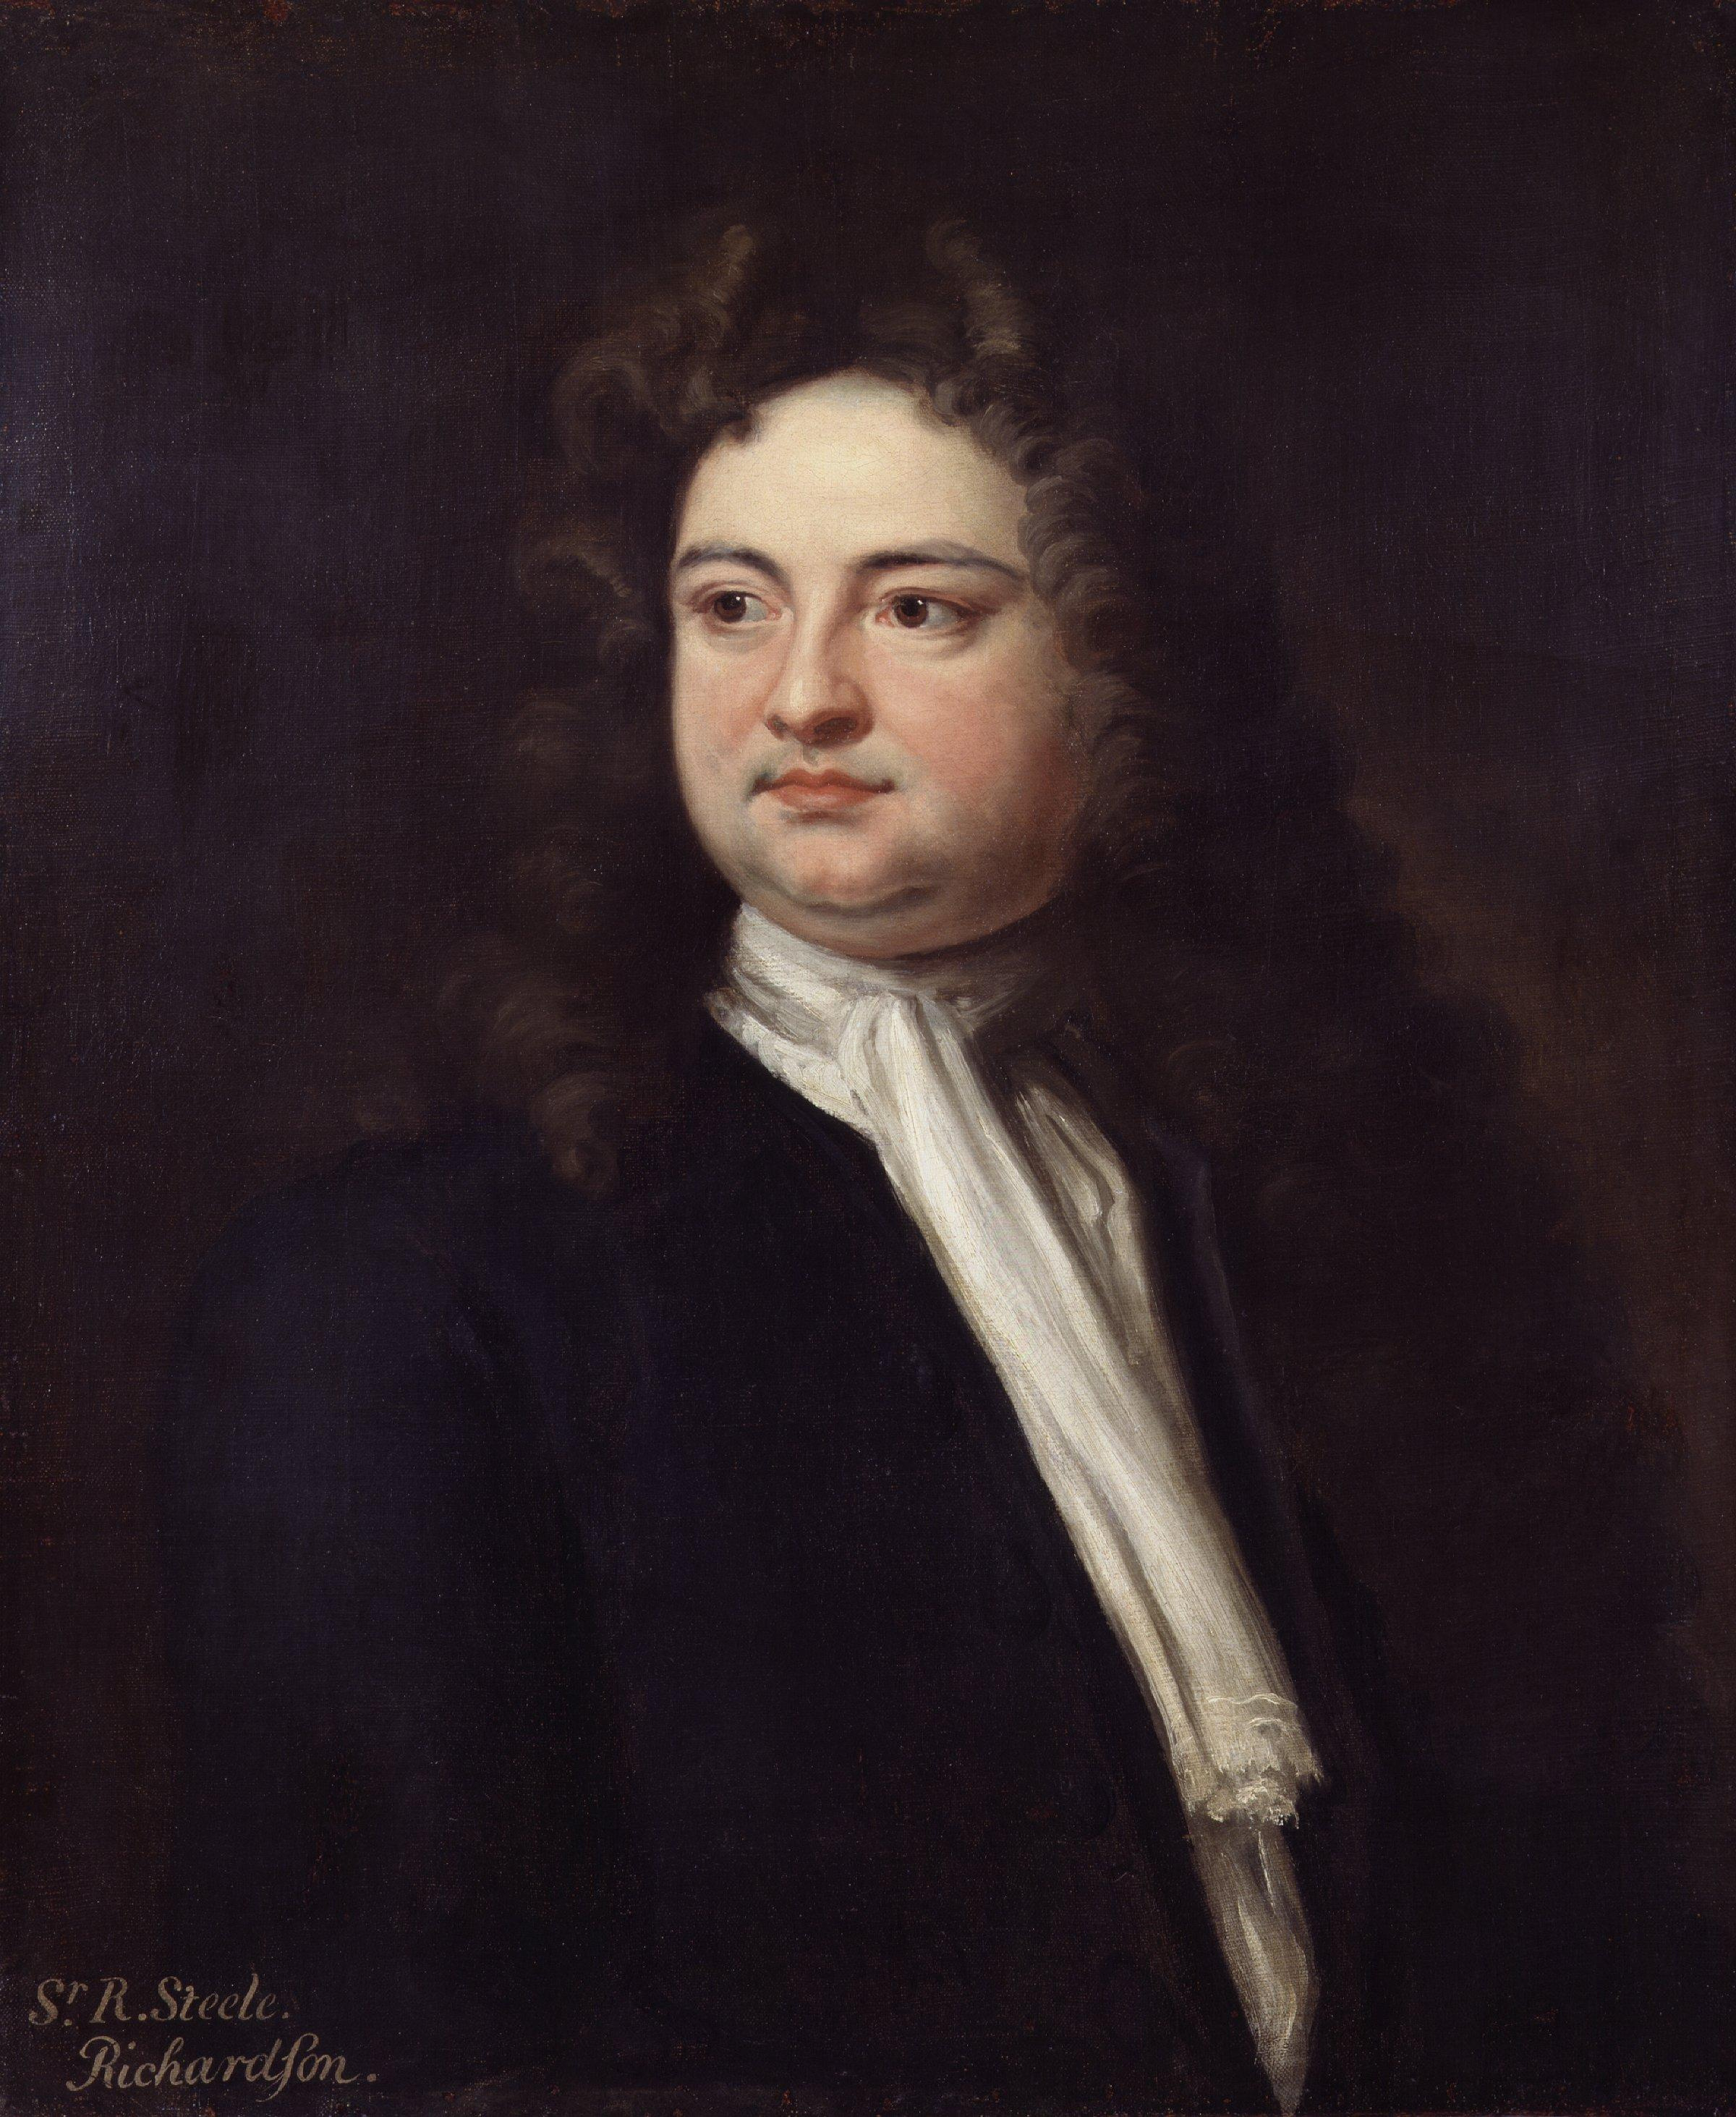 joseph addison biography